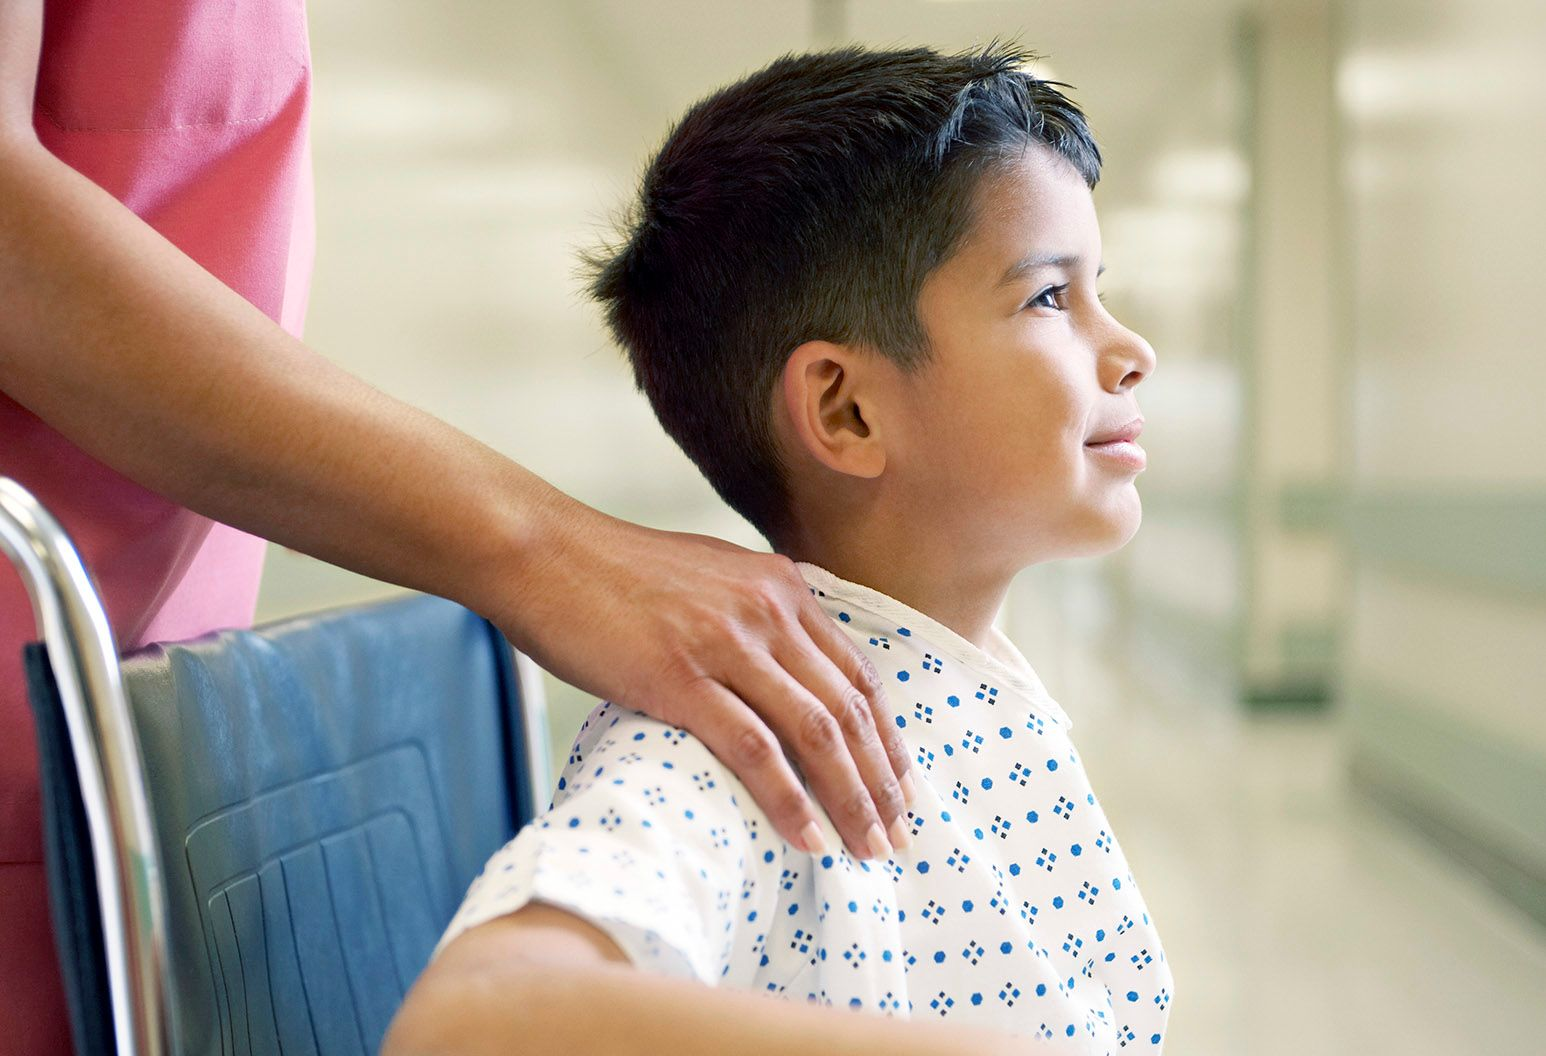 A boy around 10 years old sits in a wheel chair in the hospital, looks up and smiles. A woman has her hand on his shoulder.